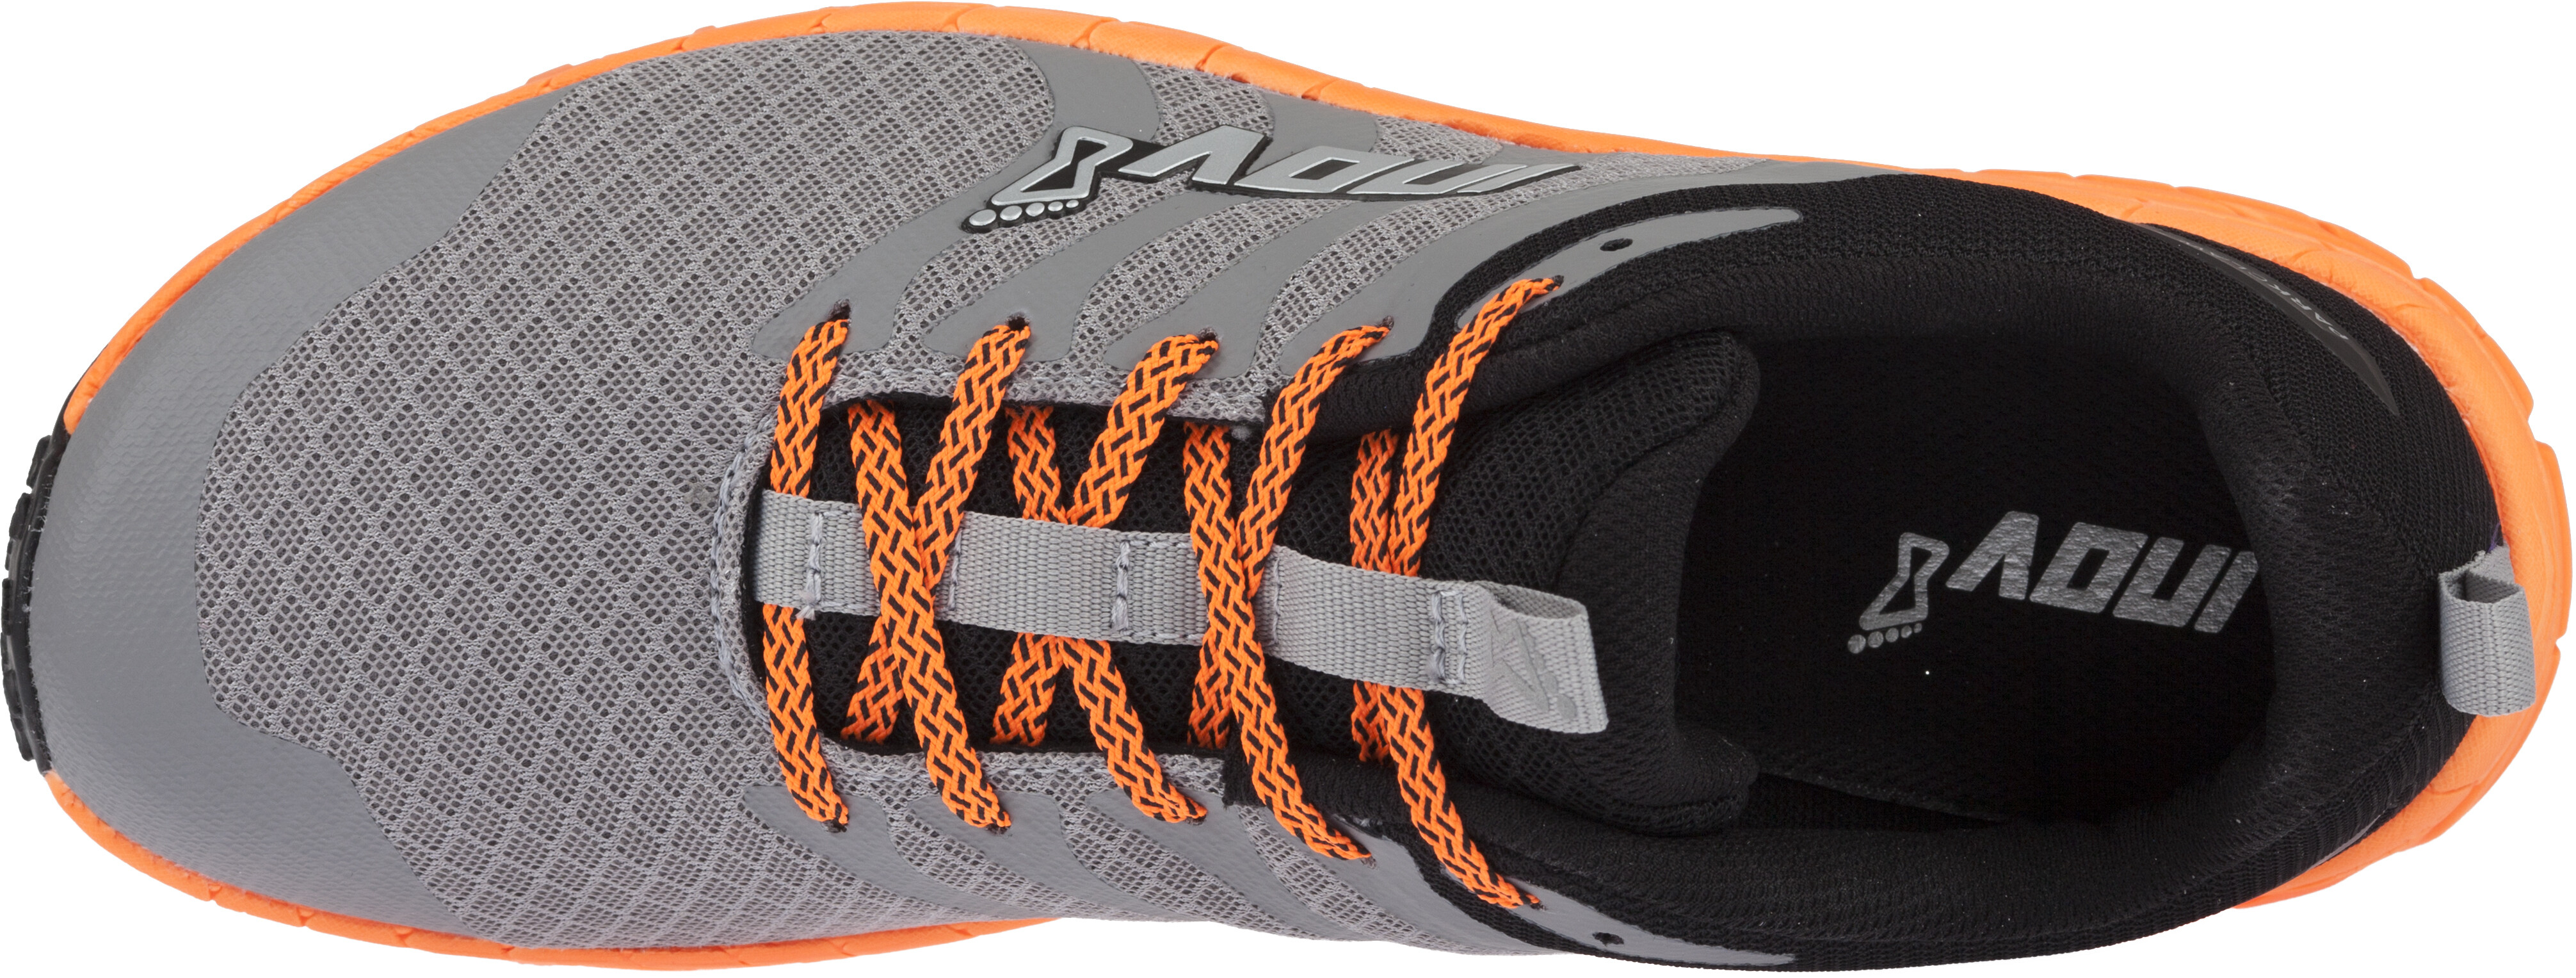 buy popular 68941 5f0ee inov-8 Parkclaw 275 Shoes Men grey/orange